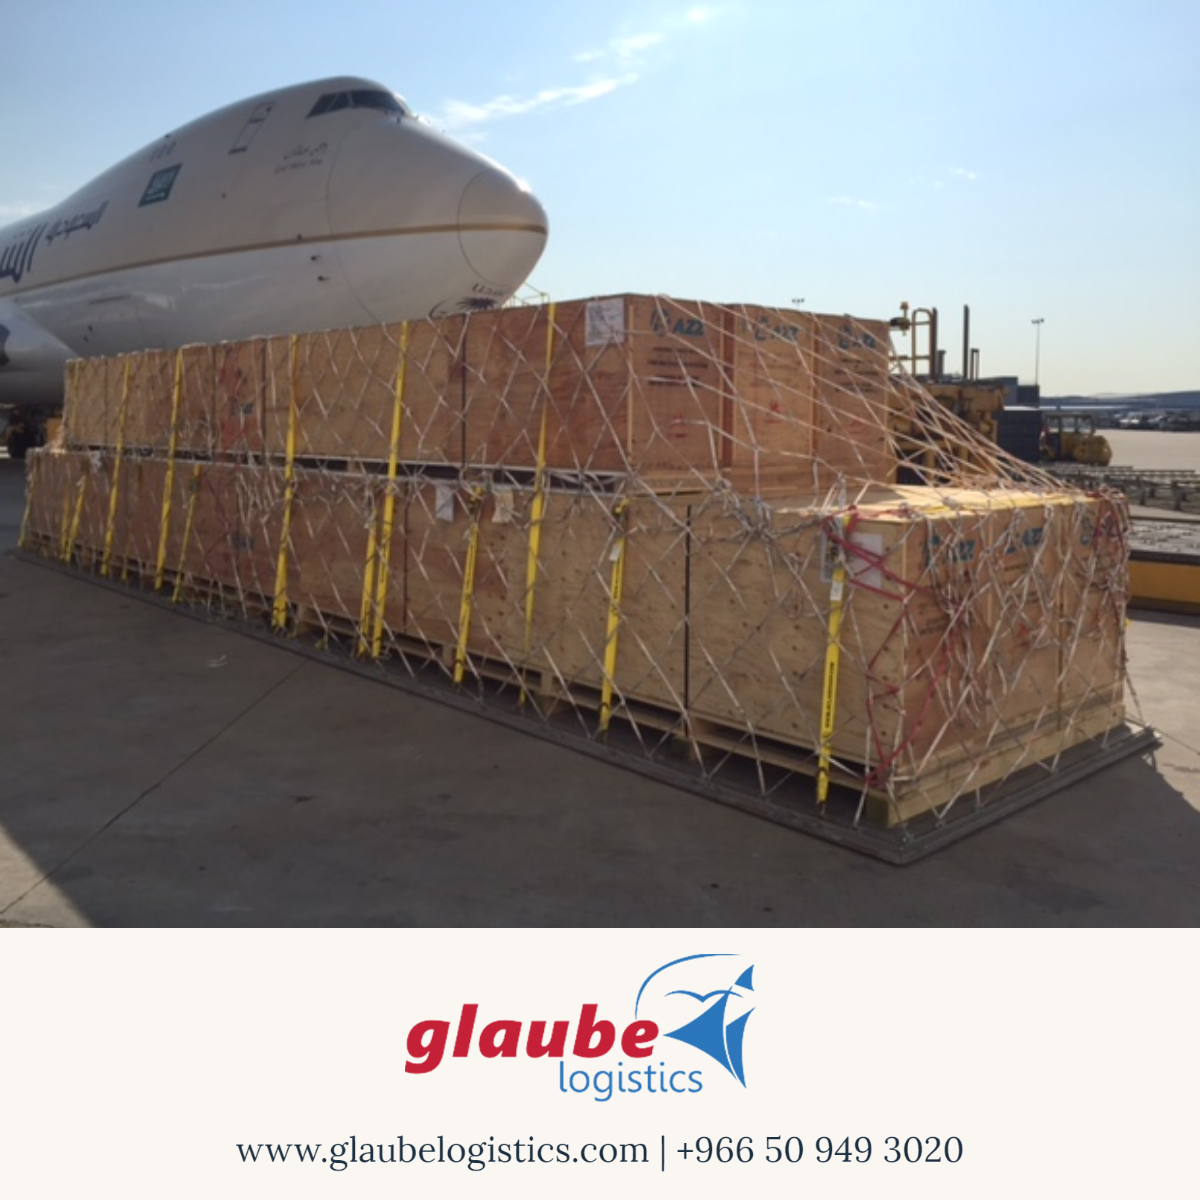 Contact us for #emergency cargo like Medical, Foods, Daily use products, etc Need clearance in #jeddah #airport or #seaport and also delivery within #saudiarabia +966 50 949 3020 www.glaubeligistics.com #glaubelogistics #stayhomestaysafe